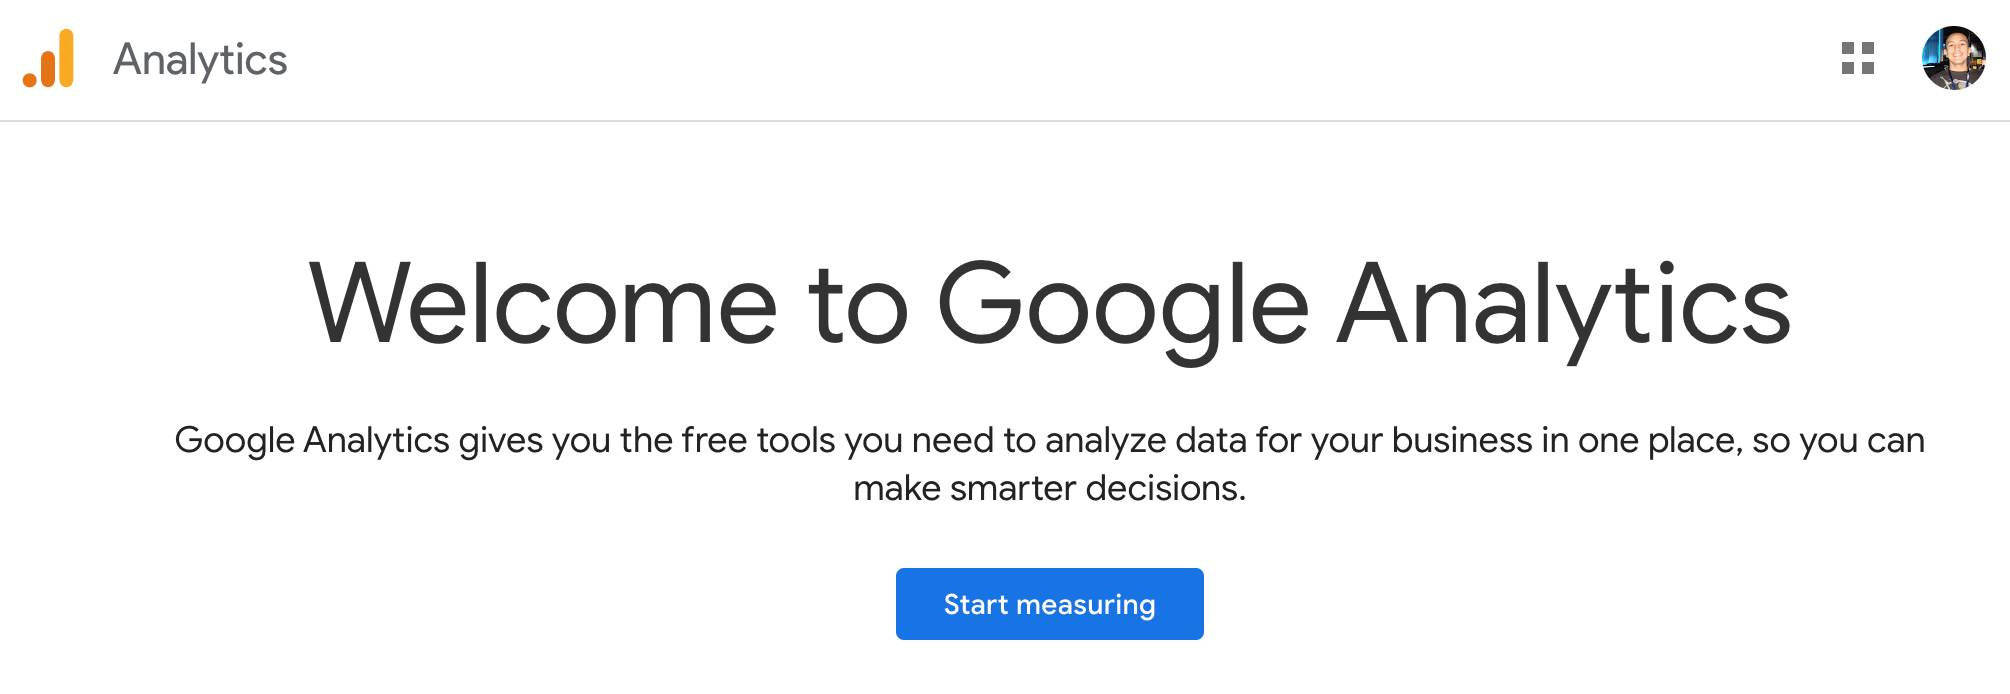 Banner that says Welcom to Google Analytics with the button that says Start measuring